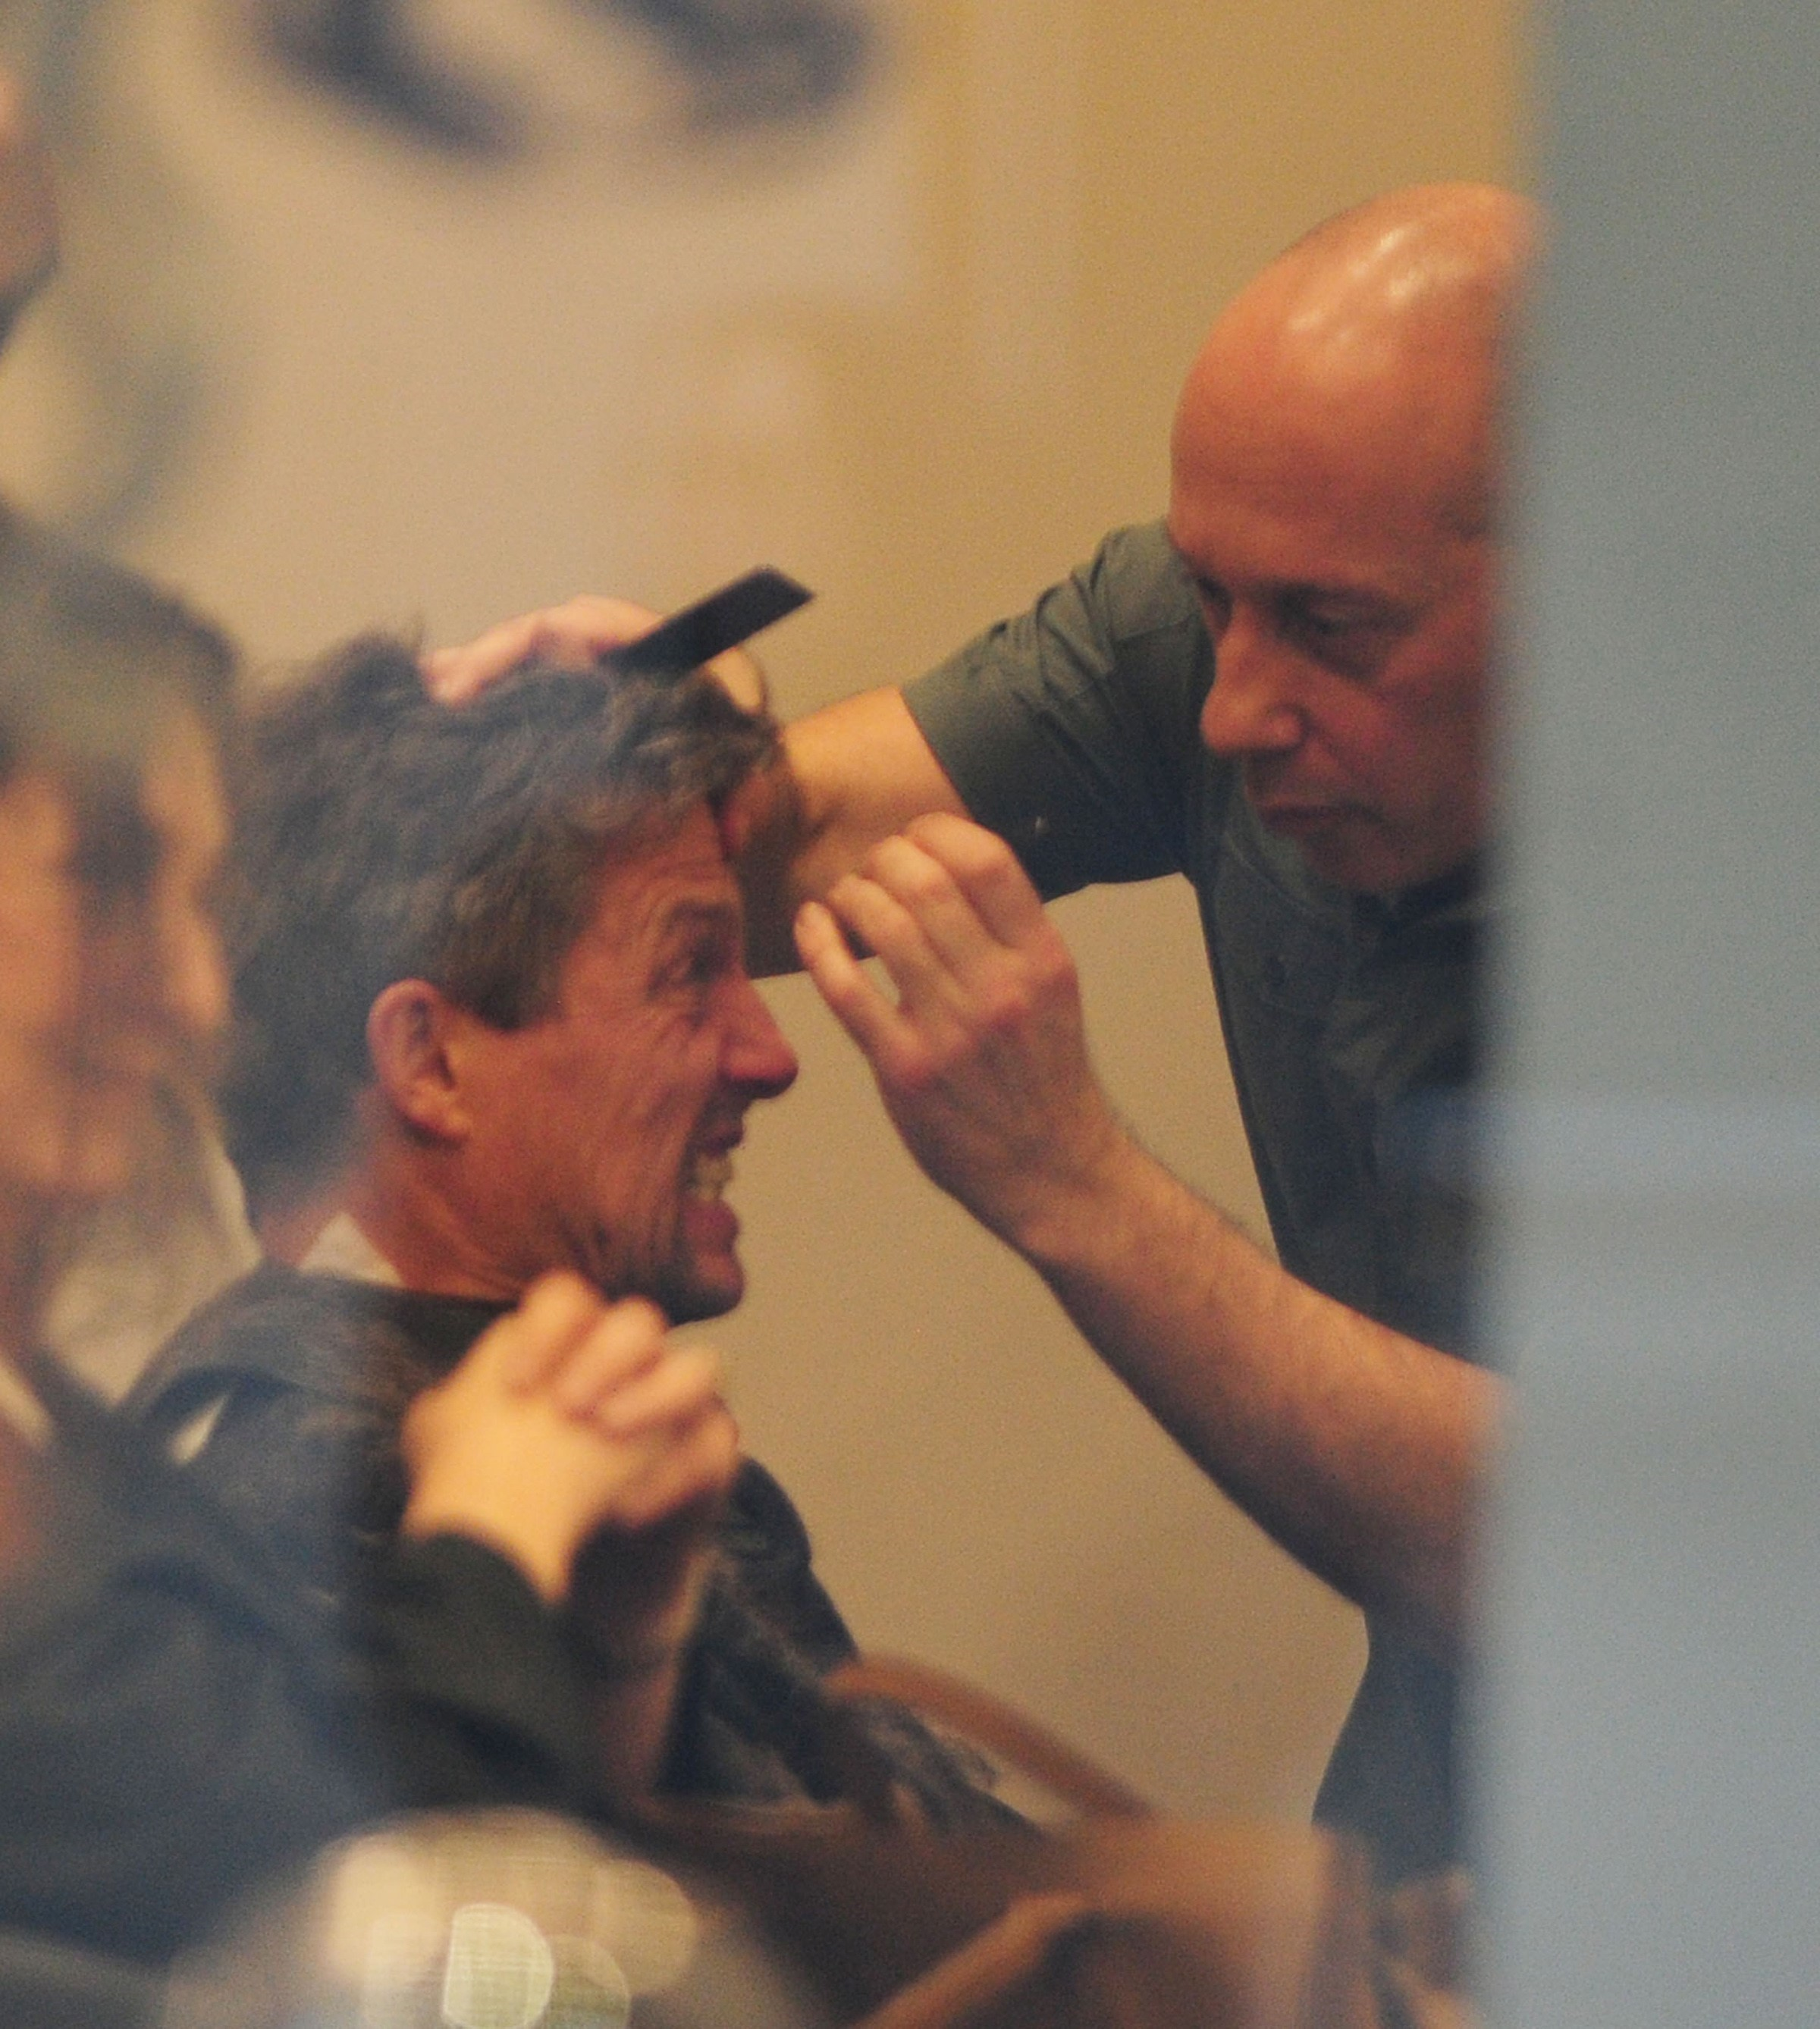 EXCLUSIVE Hugh Grant Gets A Clean Haircut And Grooming Session At Jo Hansford Salon